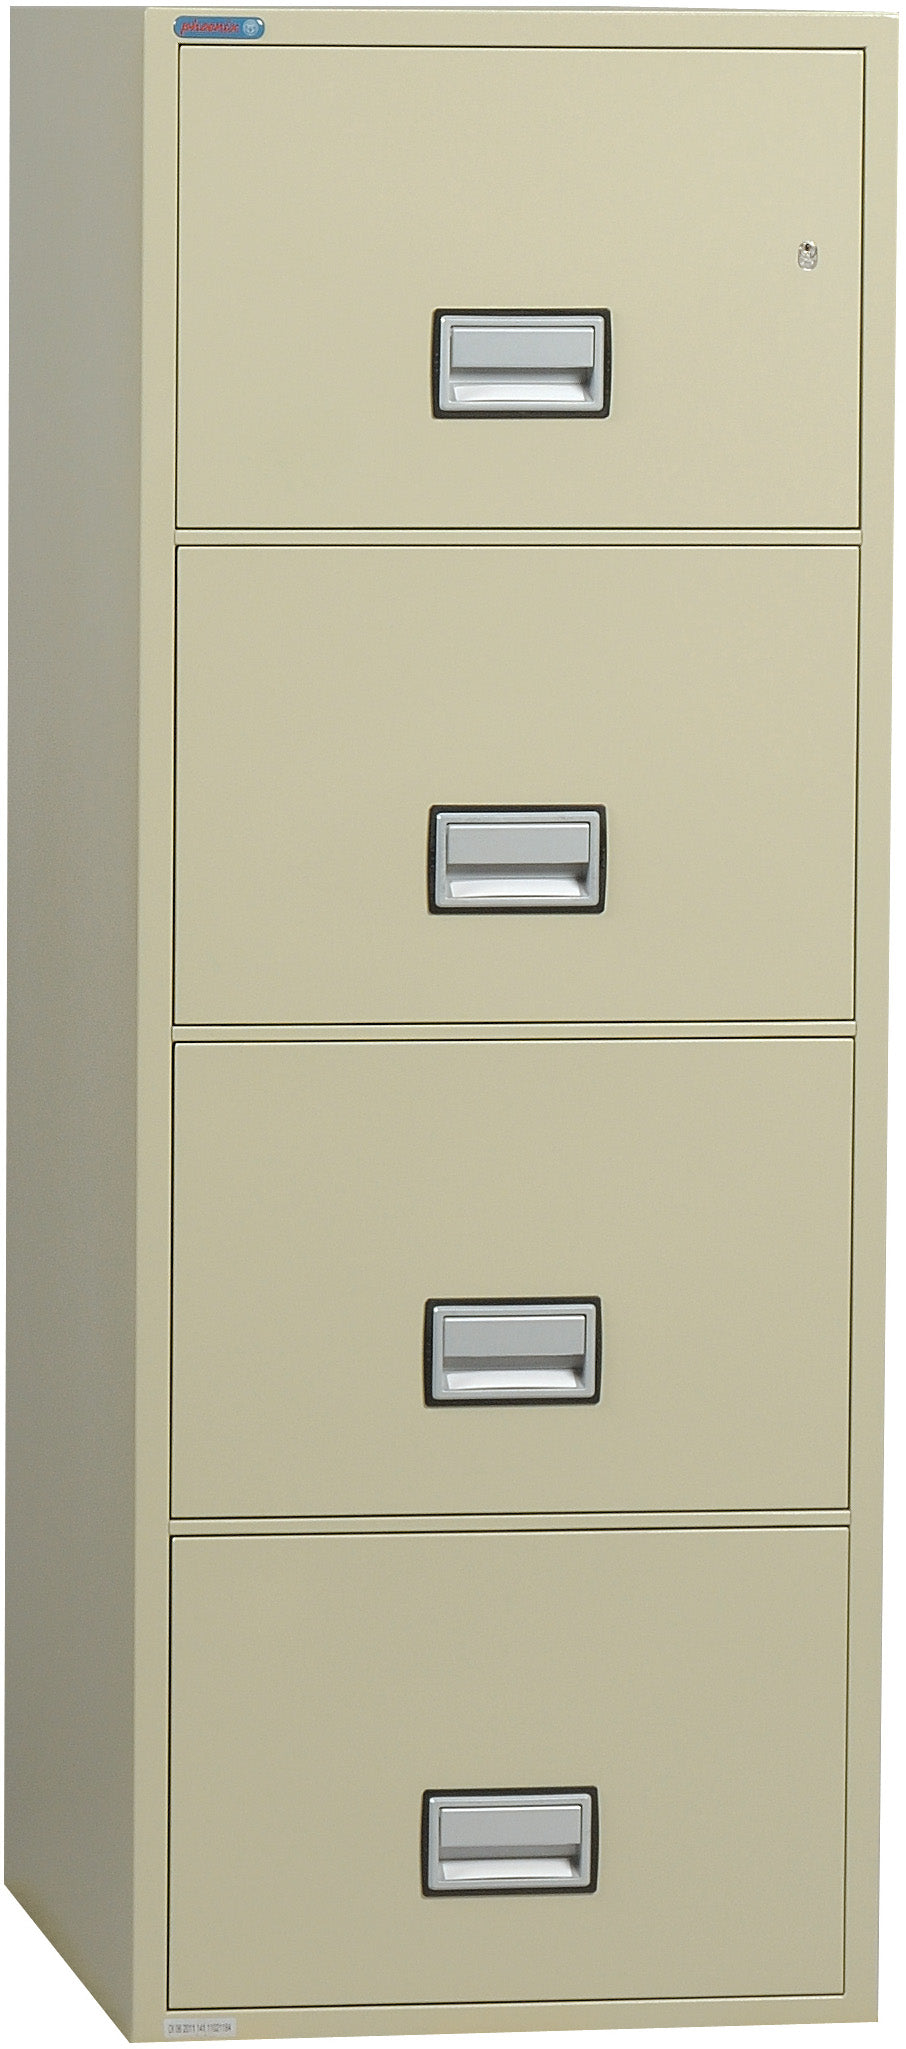 Vertical 25 inch 4-Drawer Letter Fire & Water Resistant File Cabinet